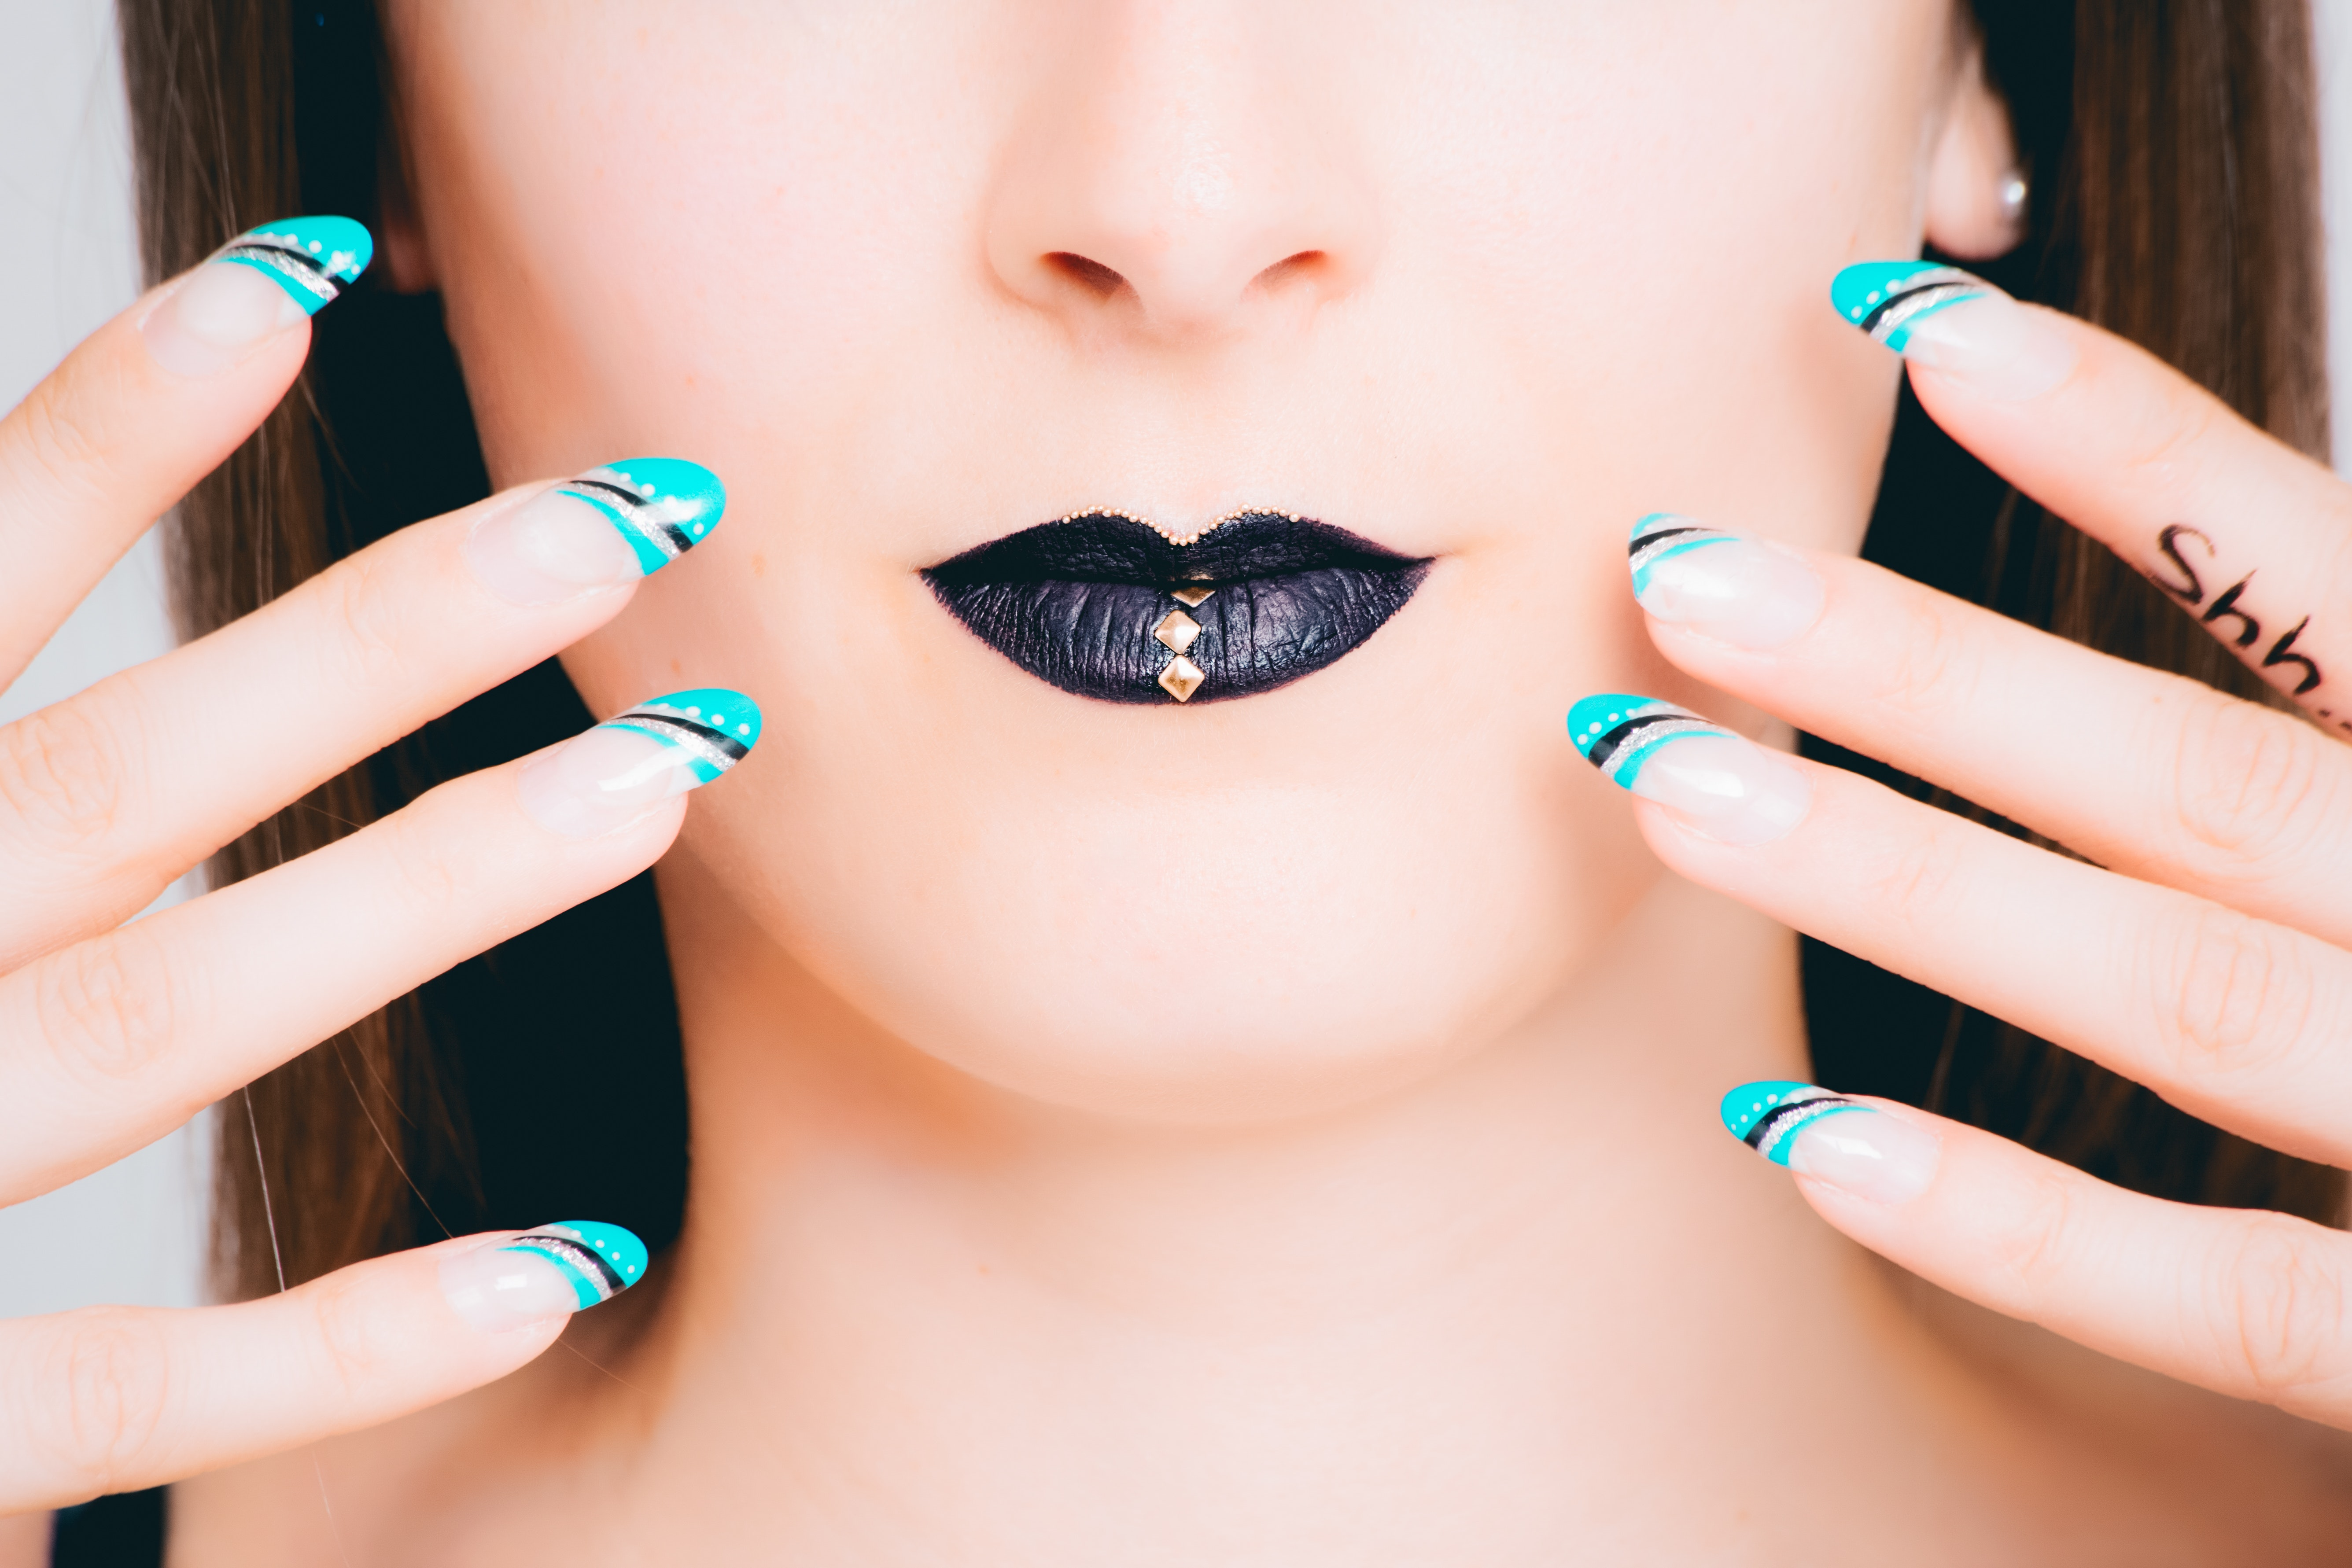 Free Photo Teal Black And White Nail Art Photoshoot Portrait